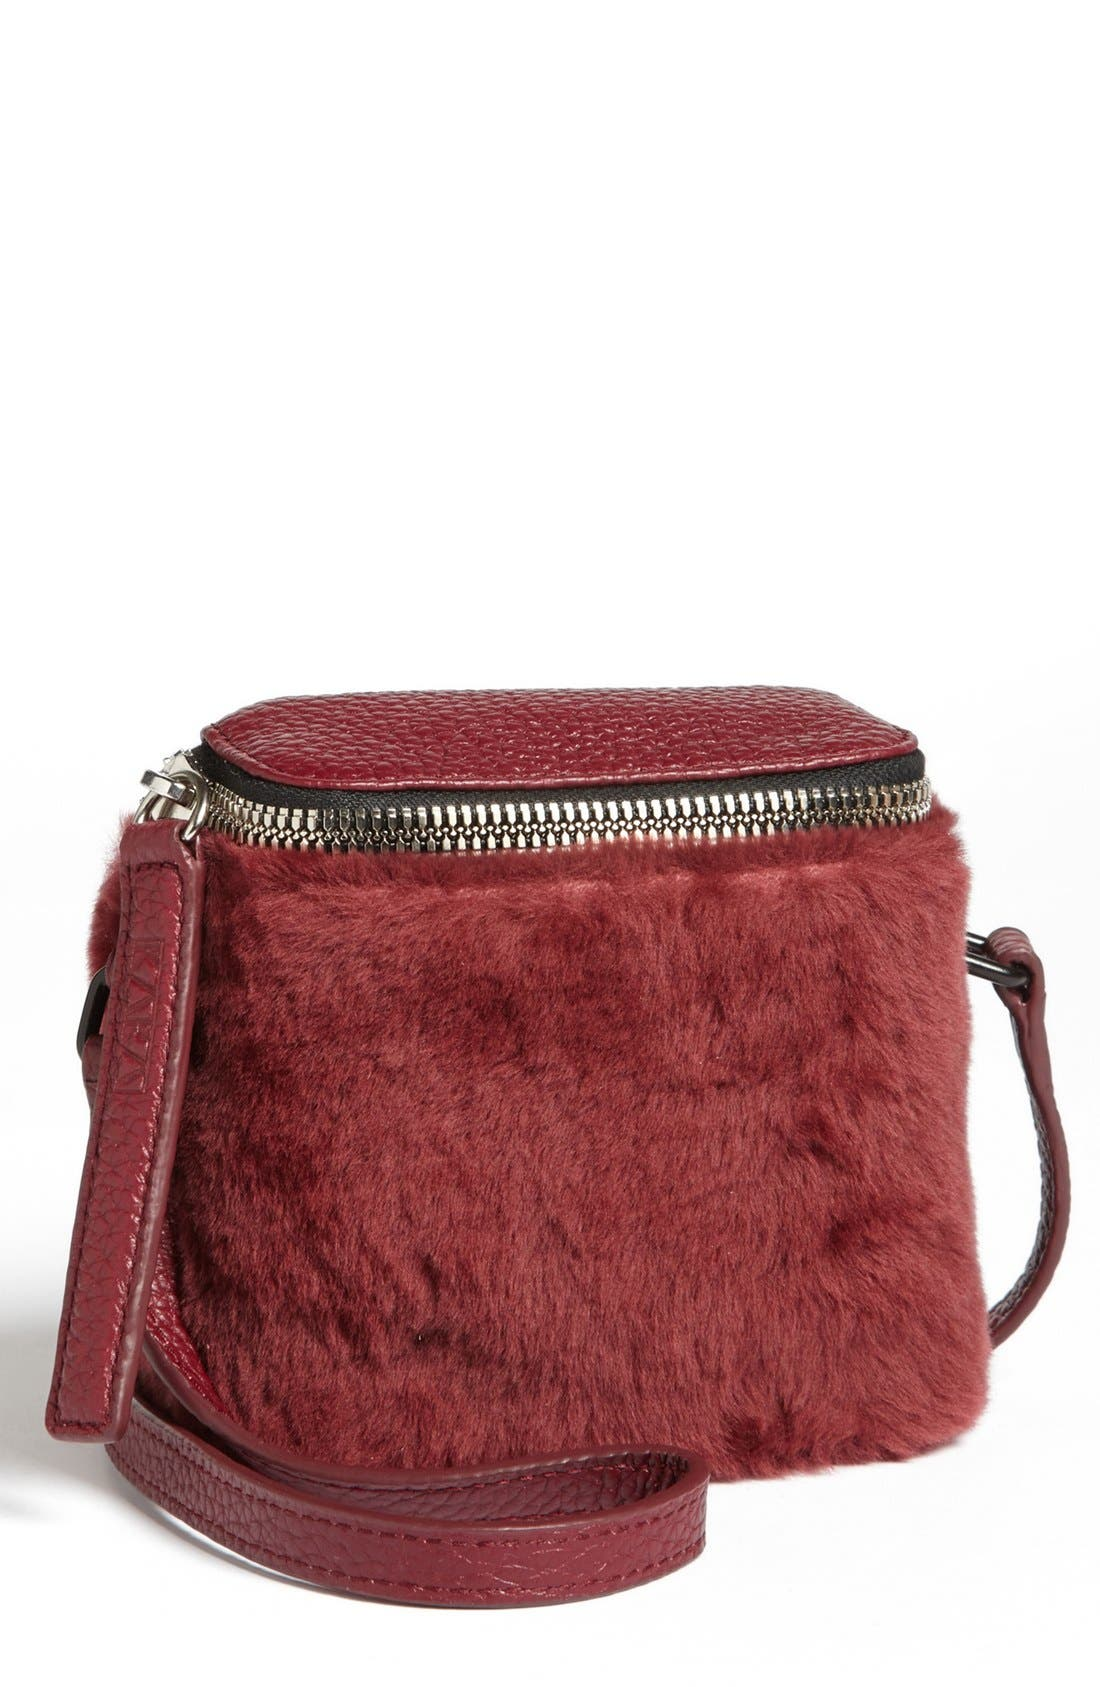 Alternate Image 2  - Kara 'Stowaway' Pebbled Leather & Genuine Shearling Crossbody Bag, Small